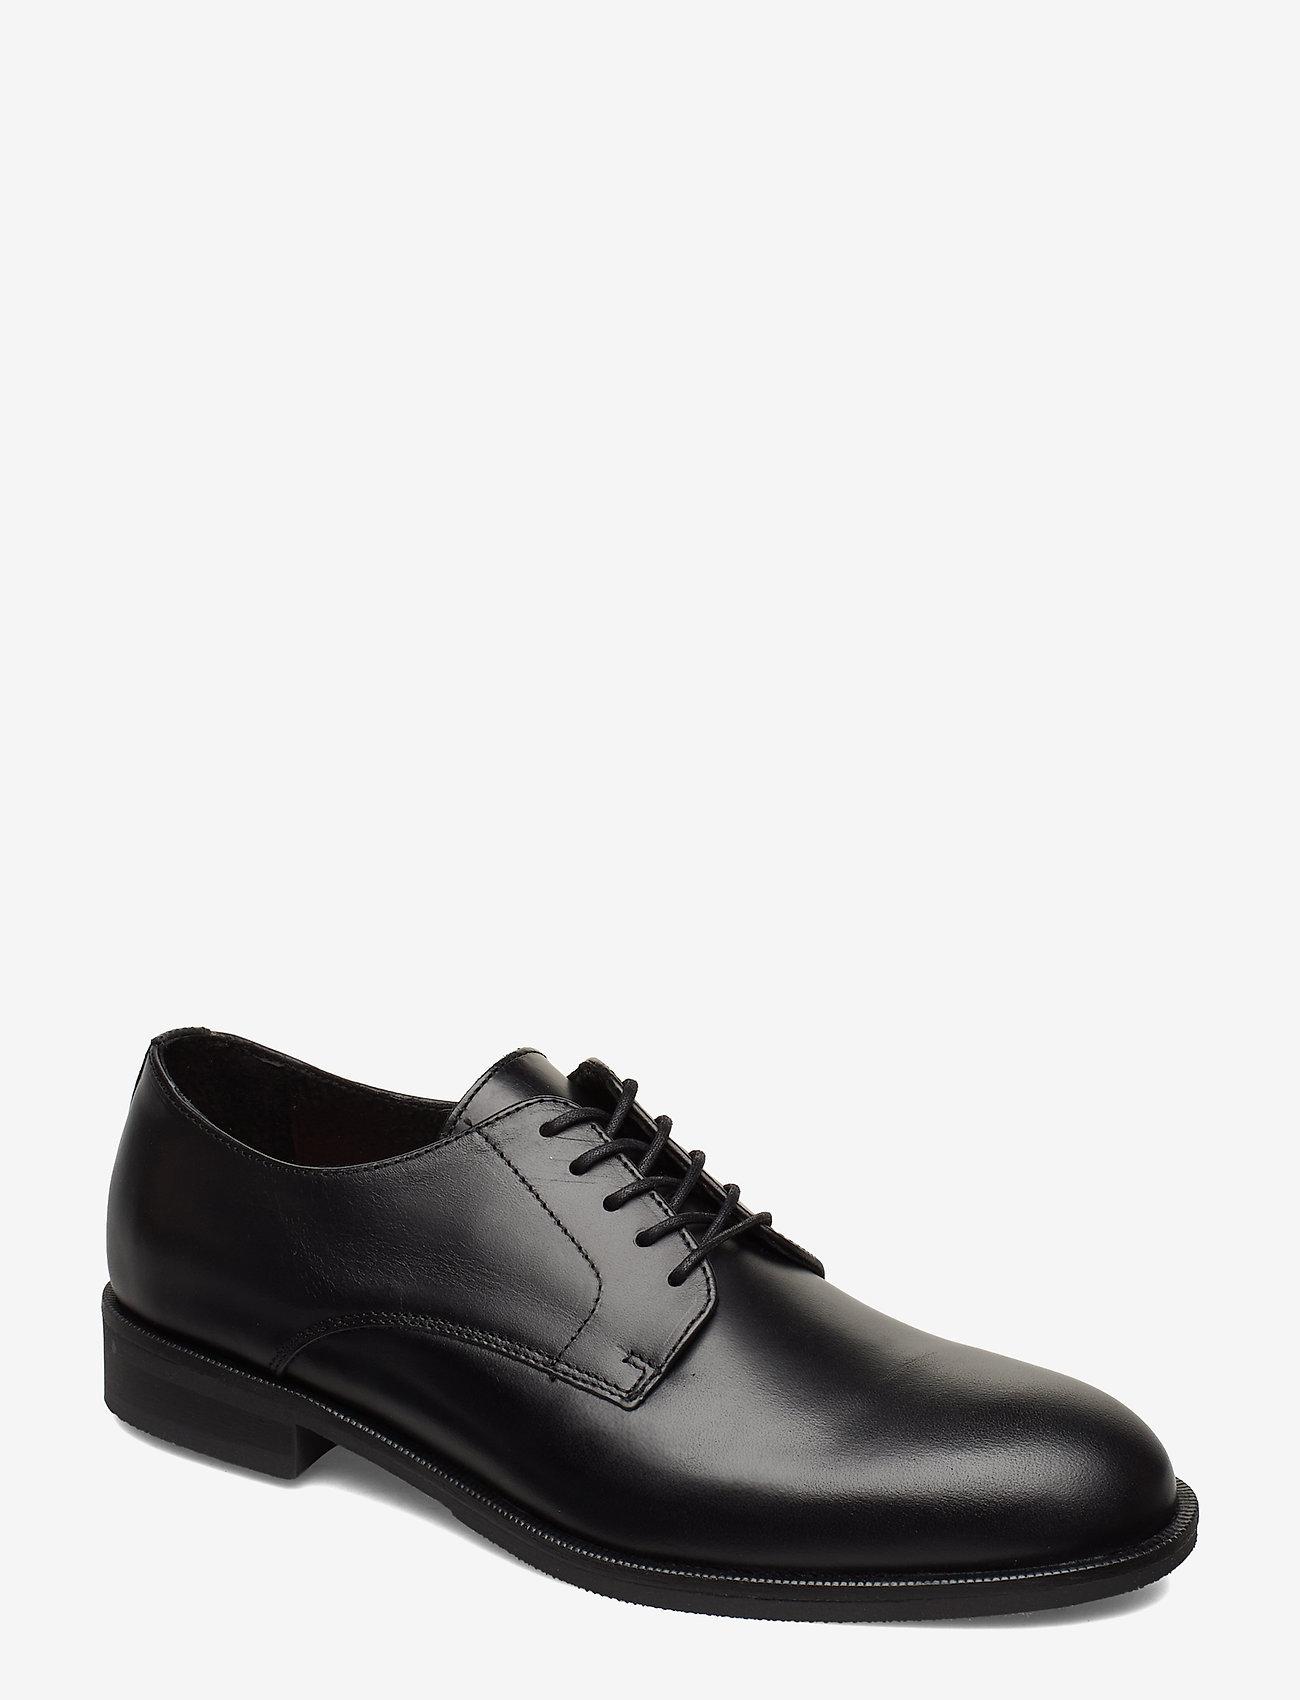 Selected Homme - SLHLOUIS LEATHER DERBY SHOE B NOOS - snøresko - black - 0